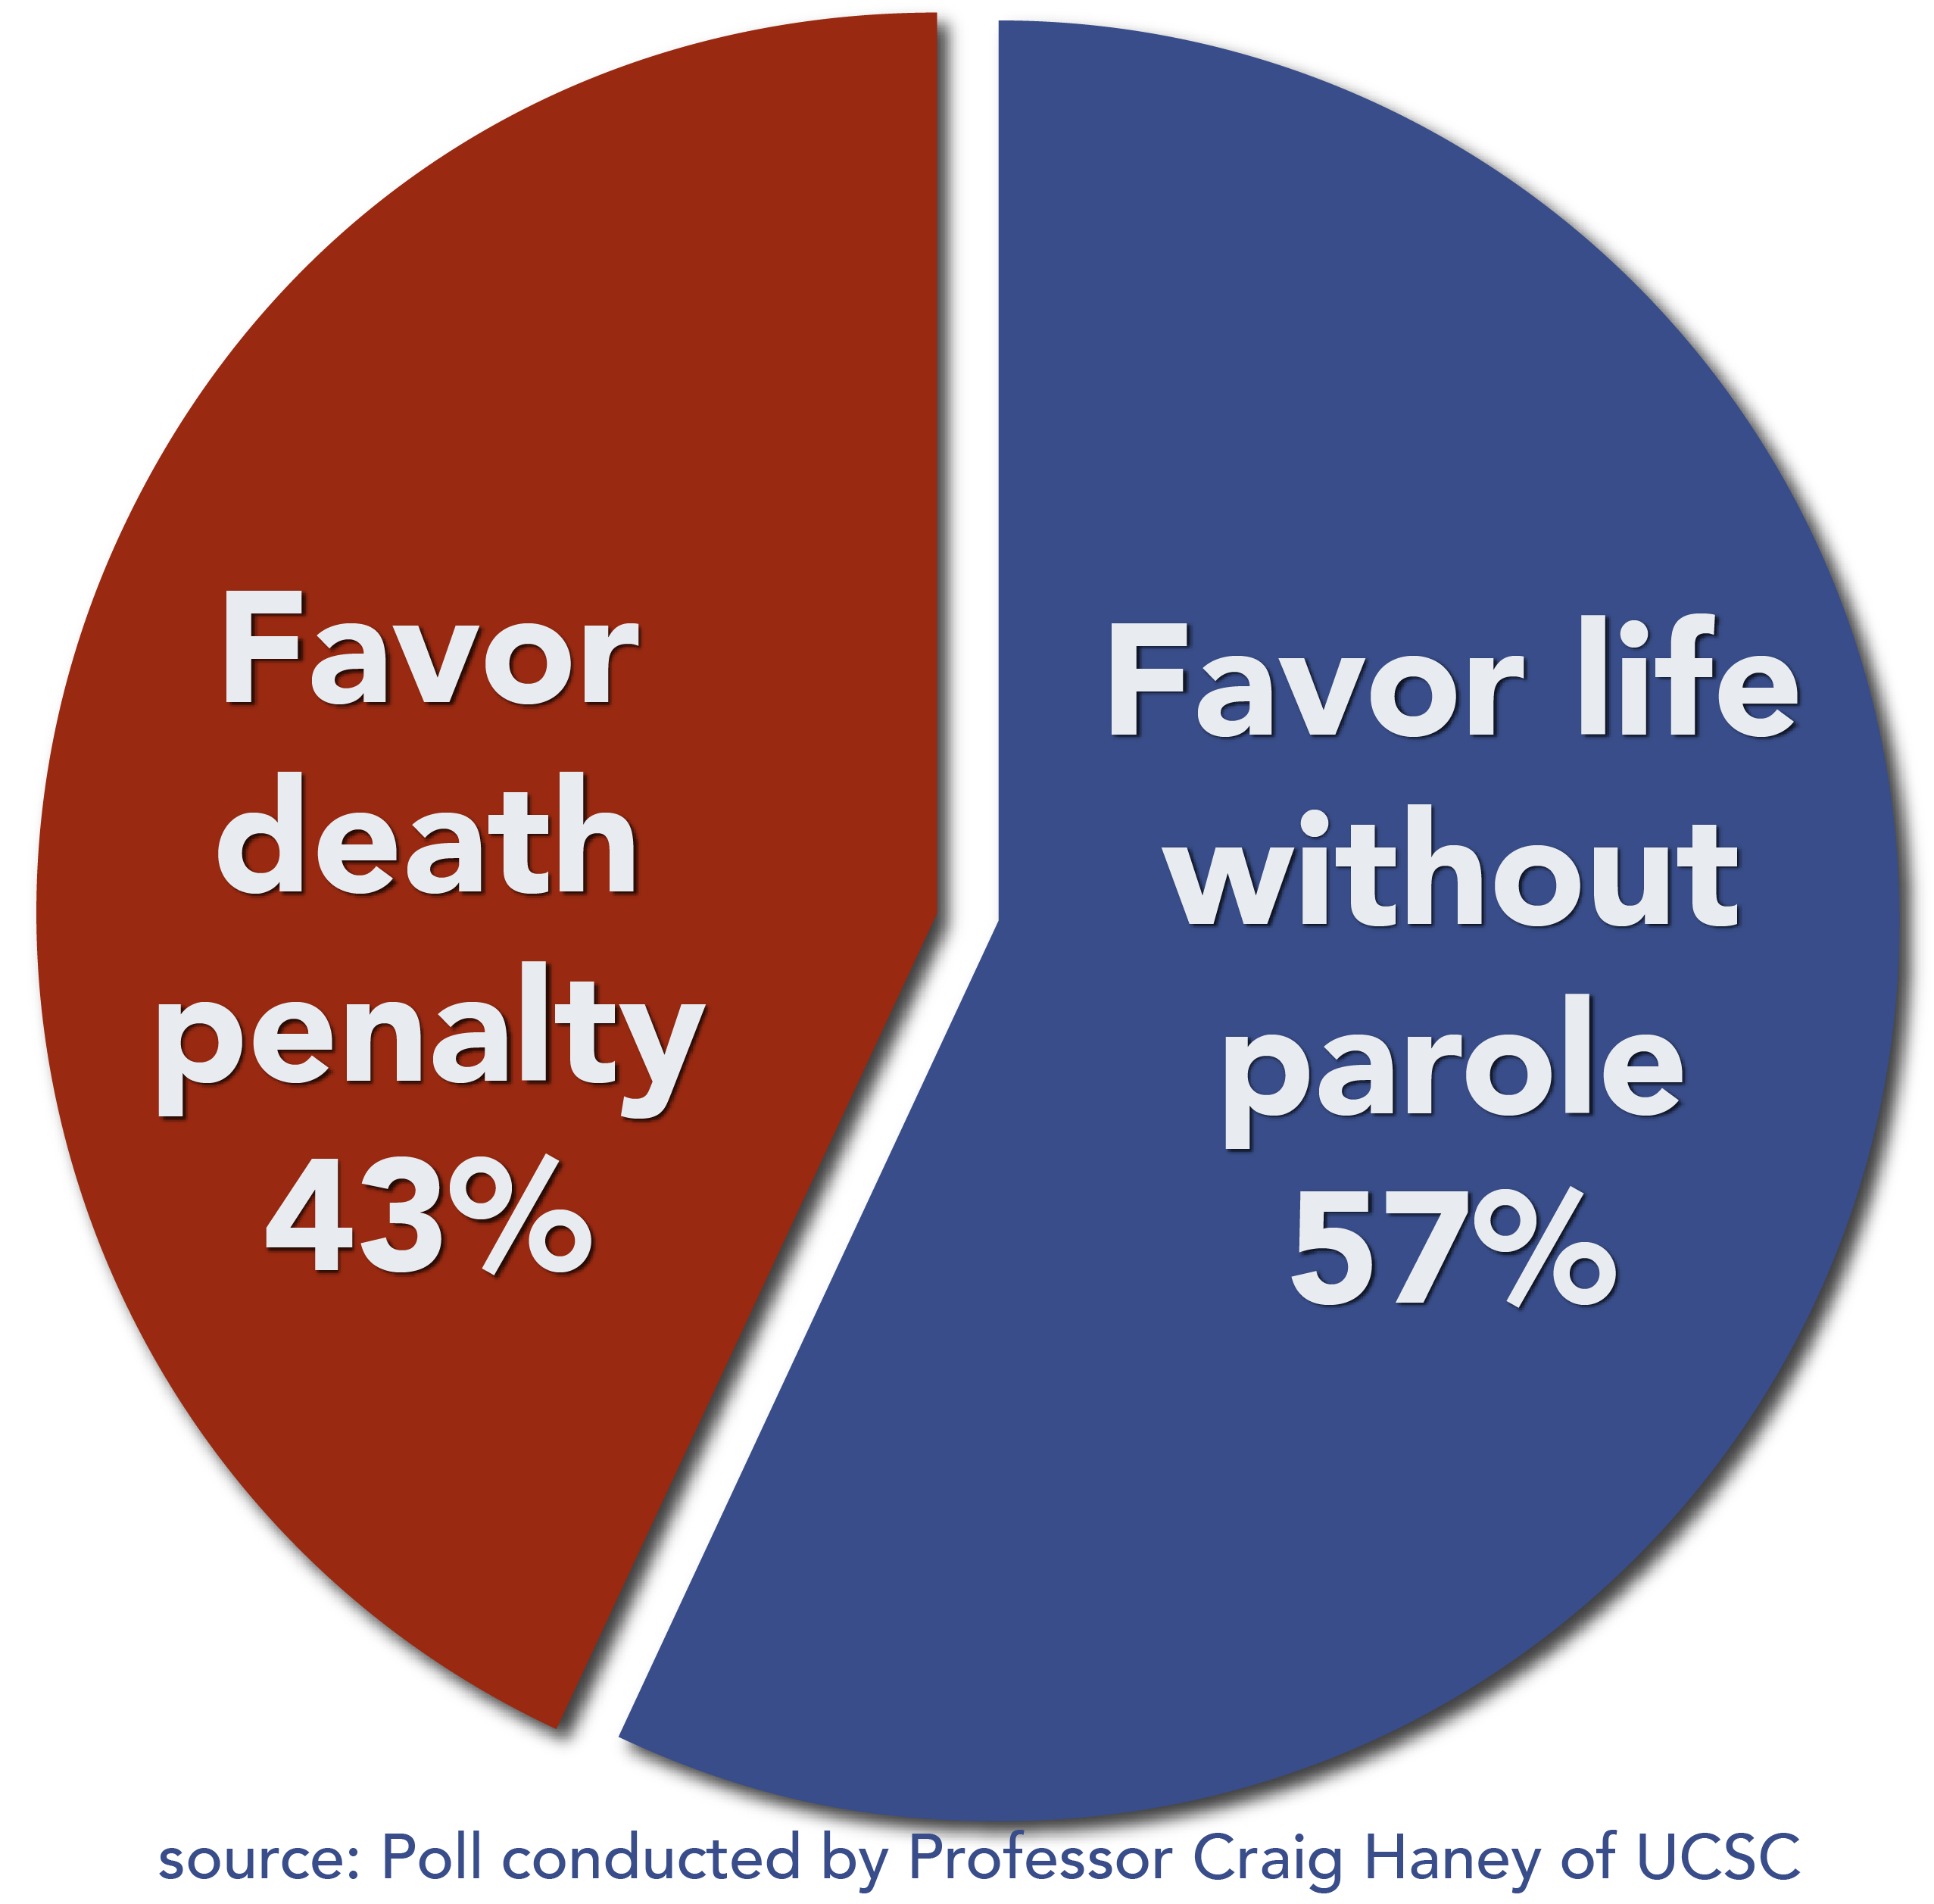 is life in prison without parole better than the death penalty essay A better solution for starbucks  states waste millions of dollars on winning  death penalty verdicts, which  $51 million a year more than holding them for life  without parole  money spent on death rows could be spent on police officers,  courts, public defenders, legal service agencies and prison cells.